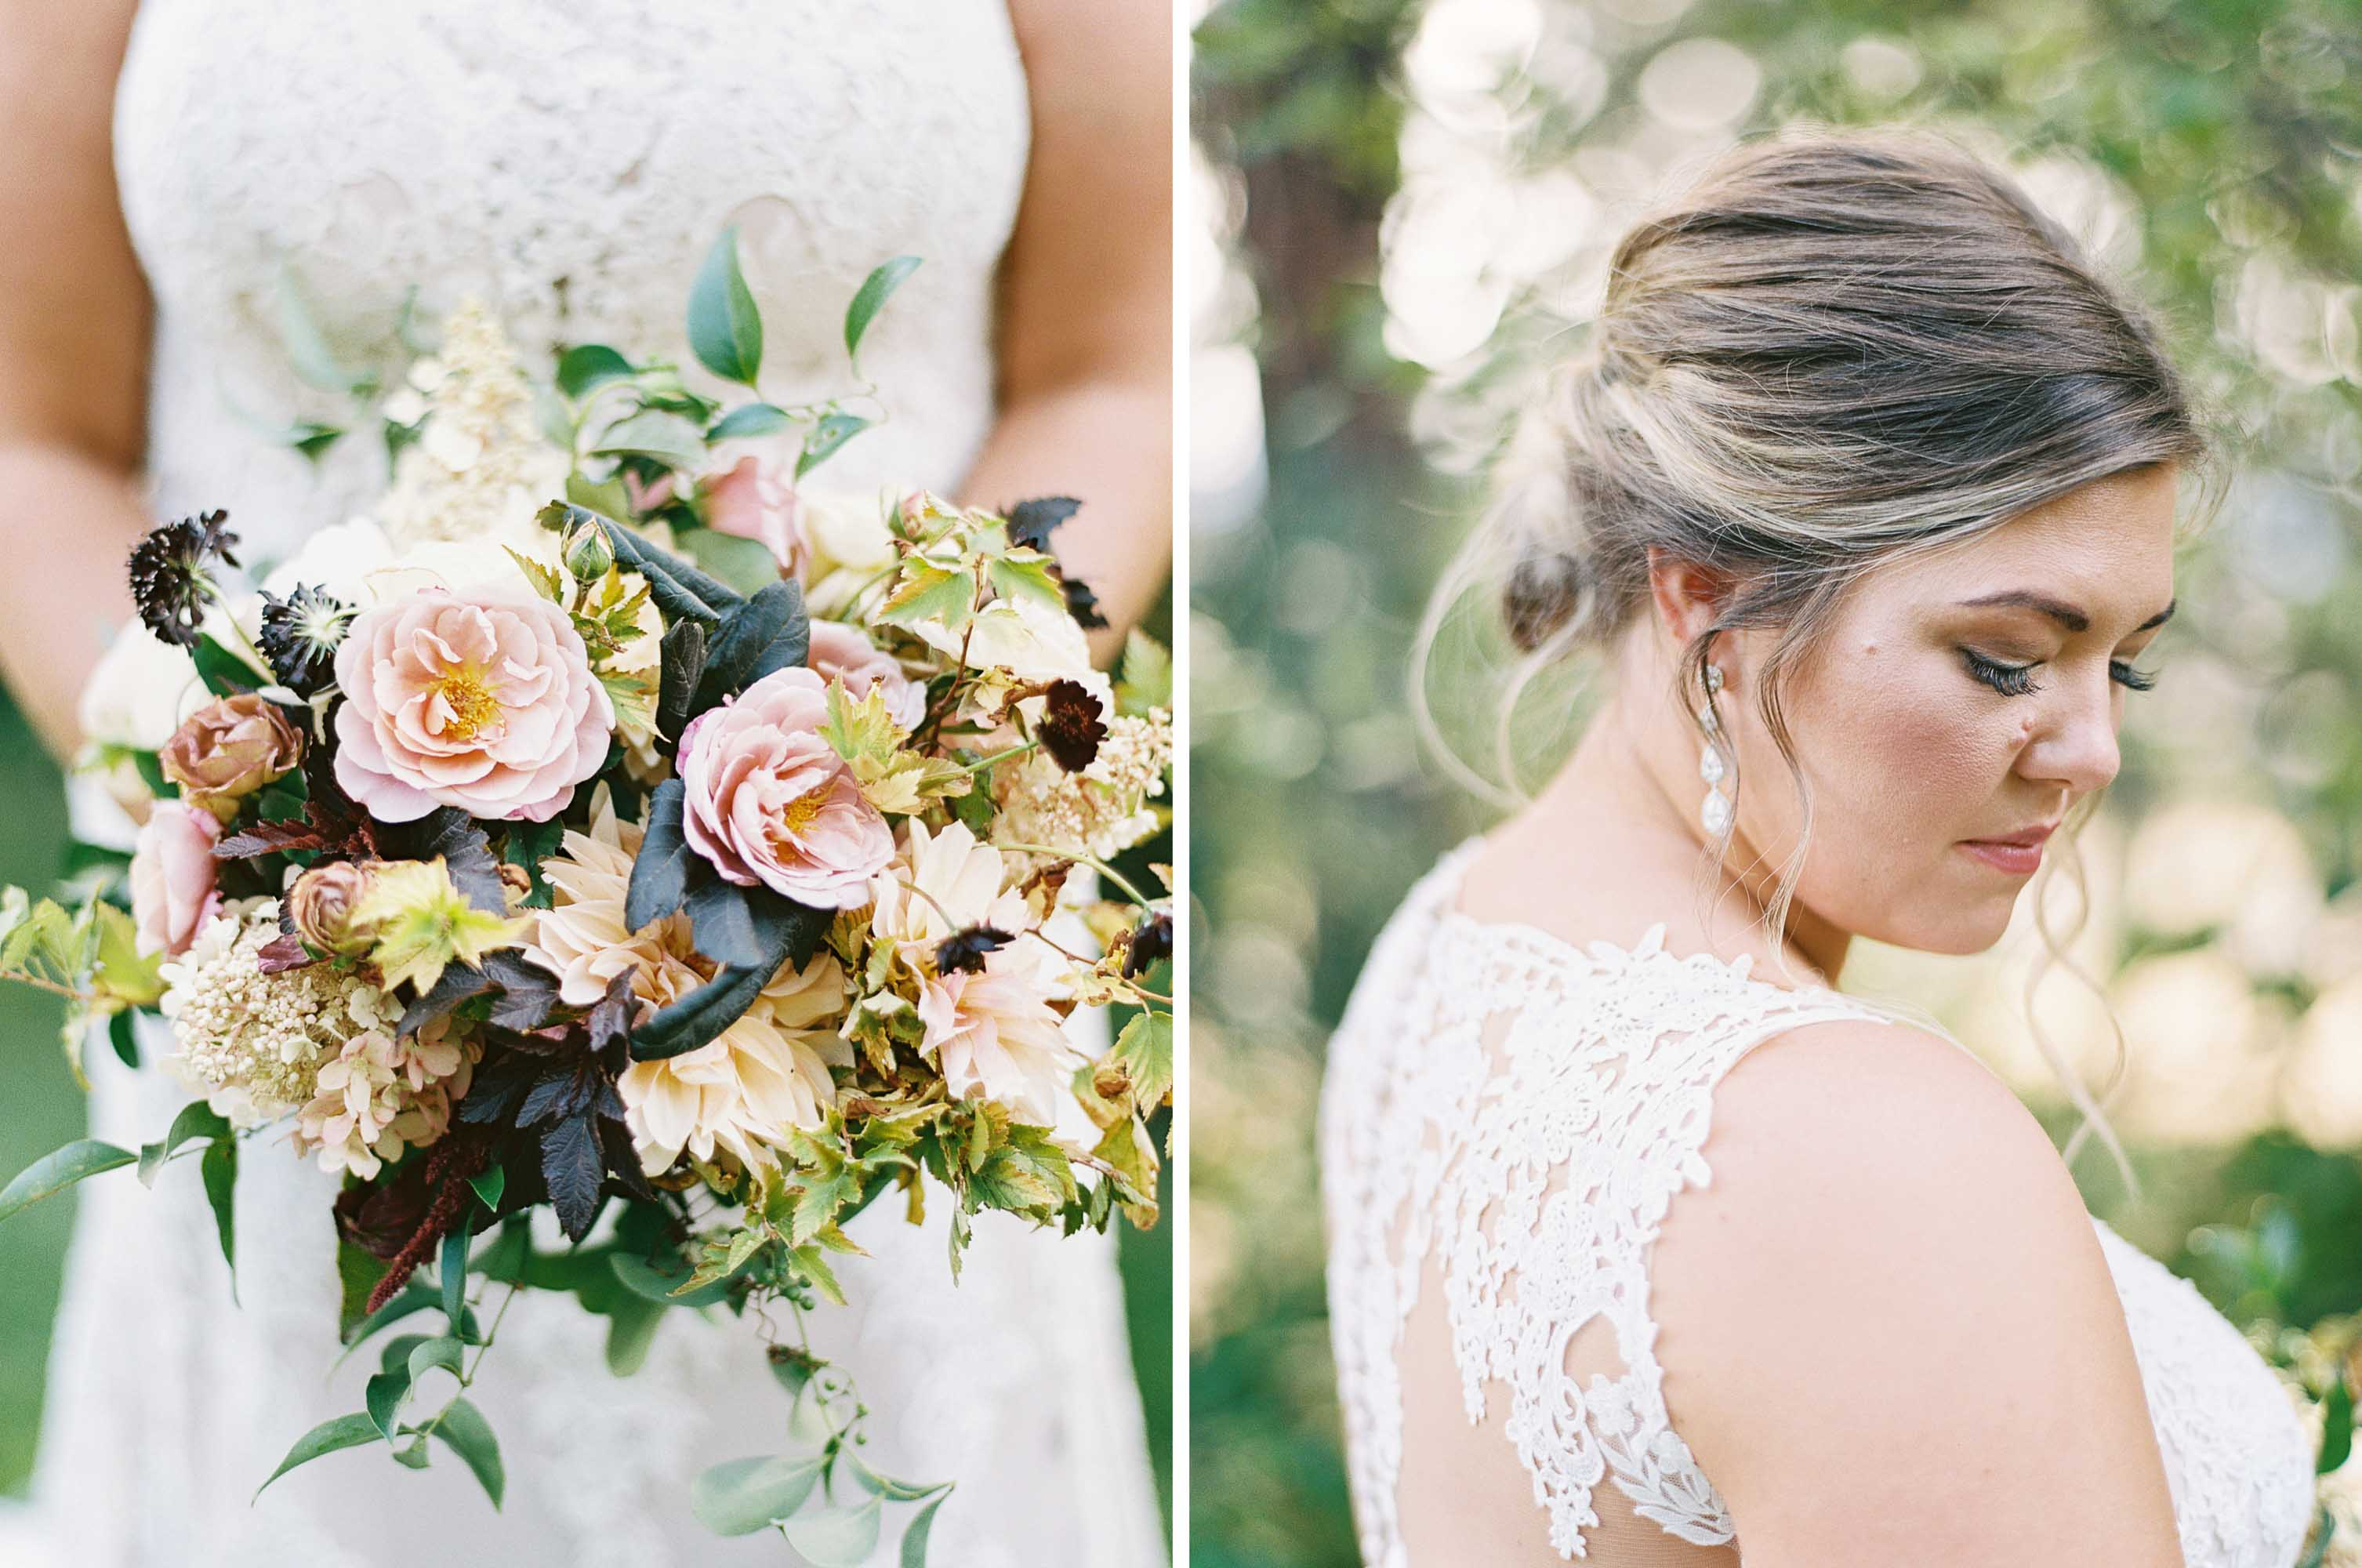 Berry toned, fall wedding with garden inspired floral design at Arbor Crest Winery in Spokane, Washington | Photographed by Seattle and Destination Wedding Photographer Anna Peters